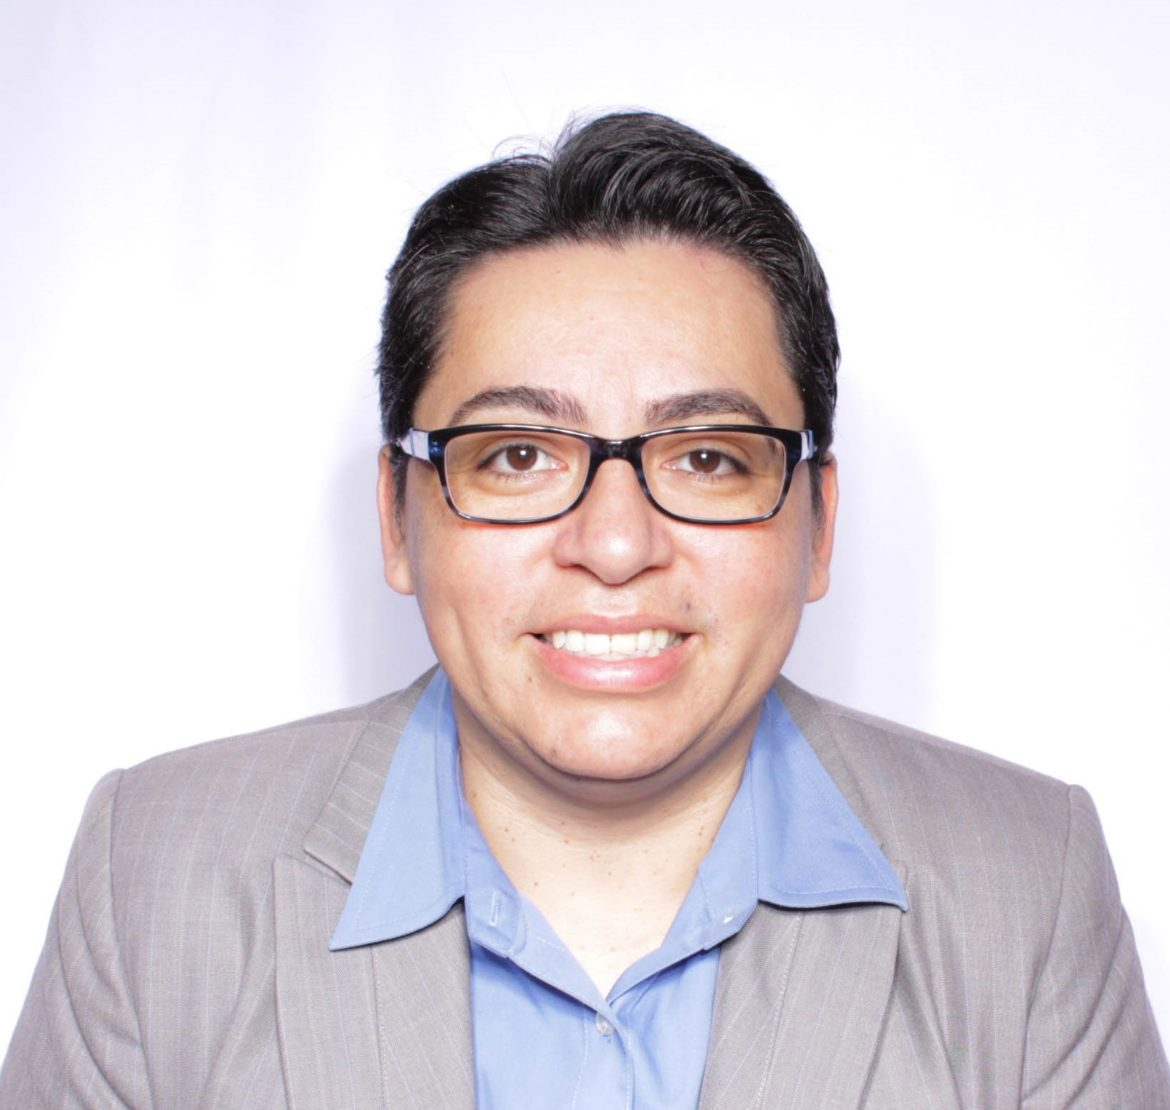 Brenda Linares is a medical librarian who works at the school of nursing at KUMC. (Courtesy)